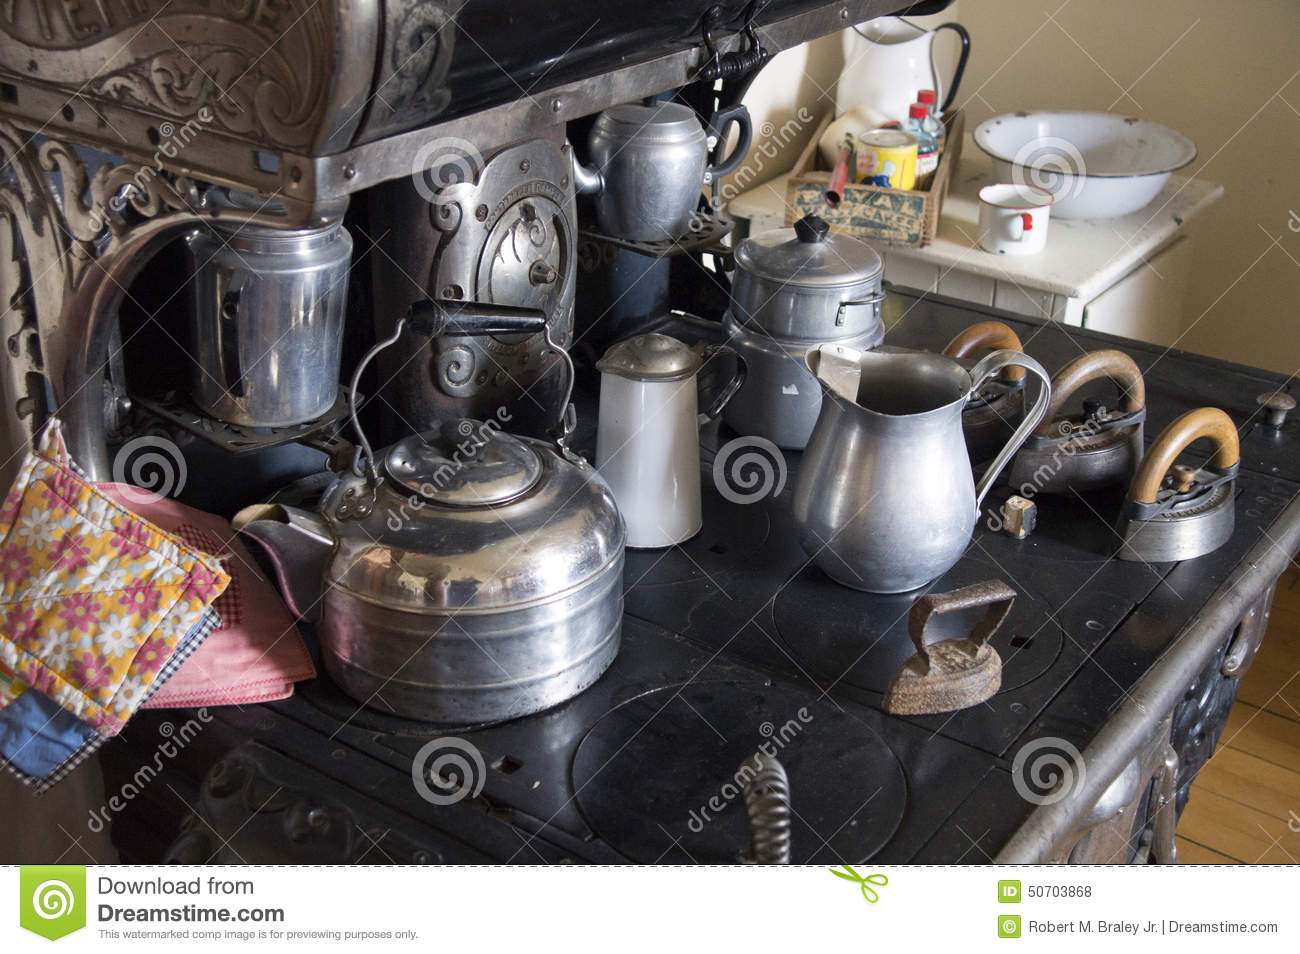 Download Vintage Kitchen Stove Alaska Highway Editorial Stock Photo - Image of stove, visitors: 50703868